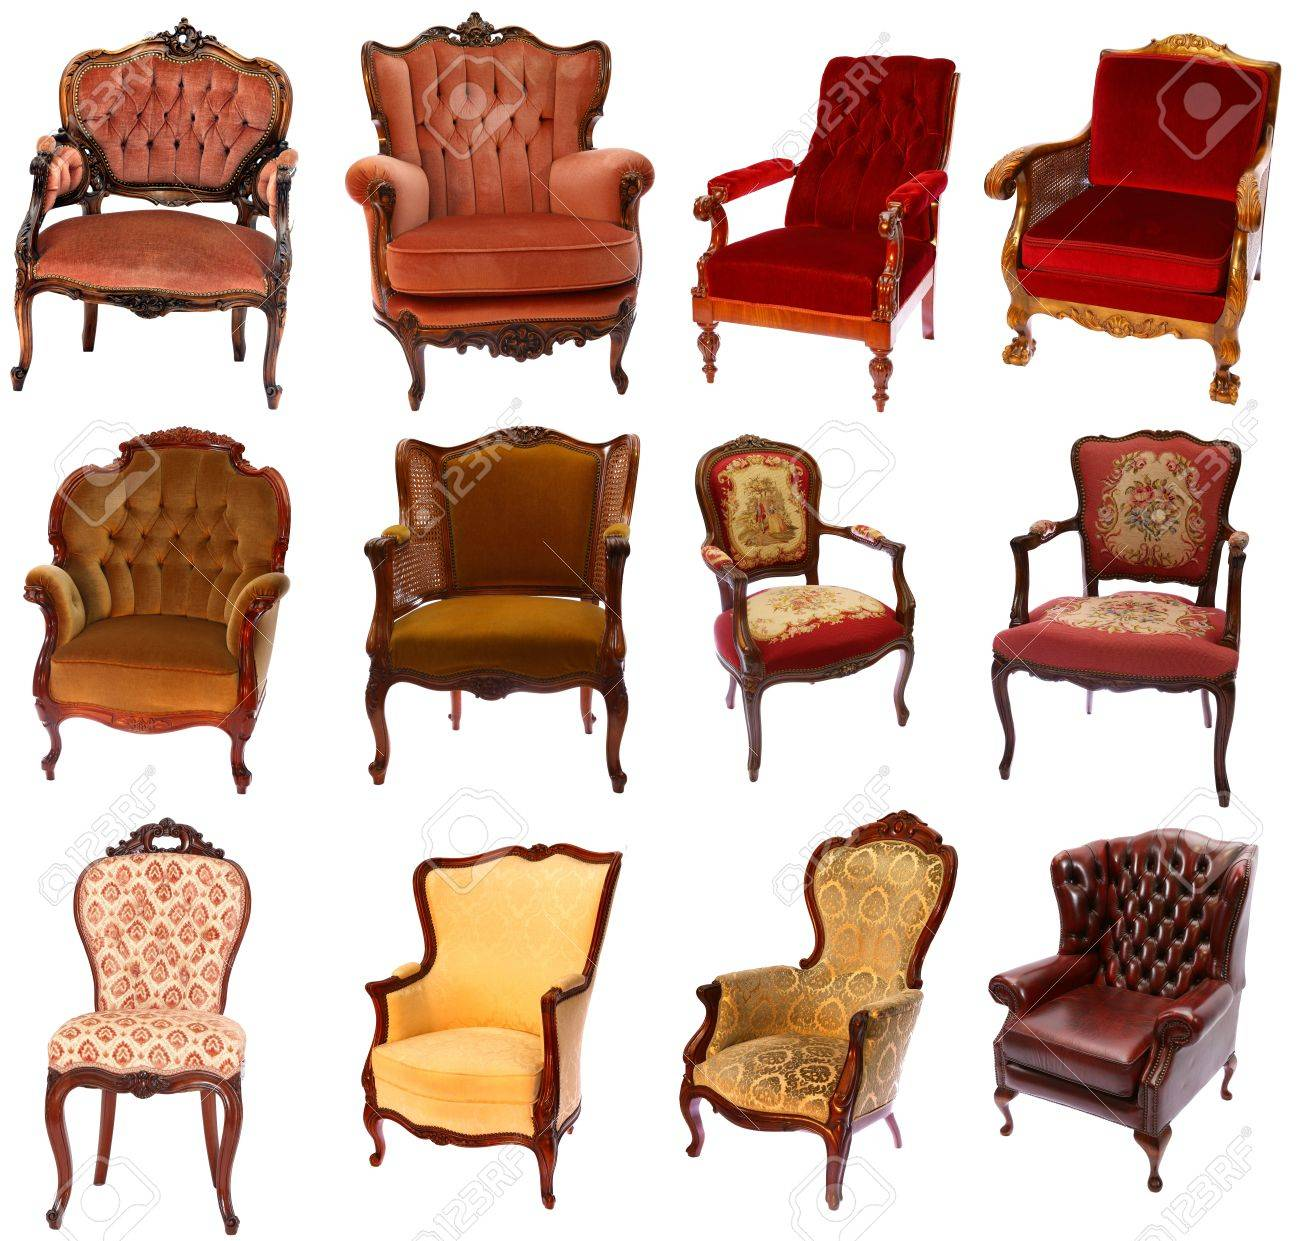 Collection of 12 different antique-style chairs isolated on white  background Stock Photo - 54643889 - Collection Of 12 Different Antique-style Chairs Isolated On White